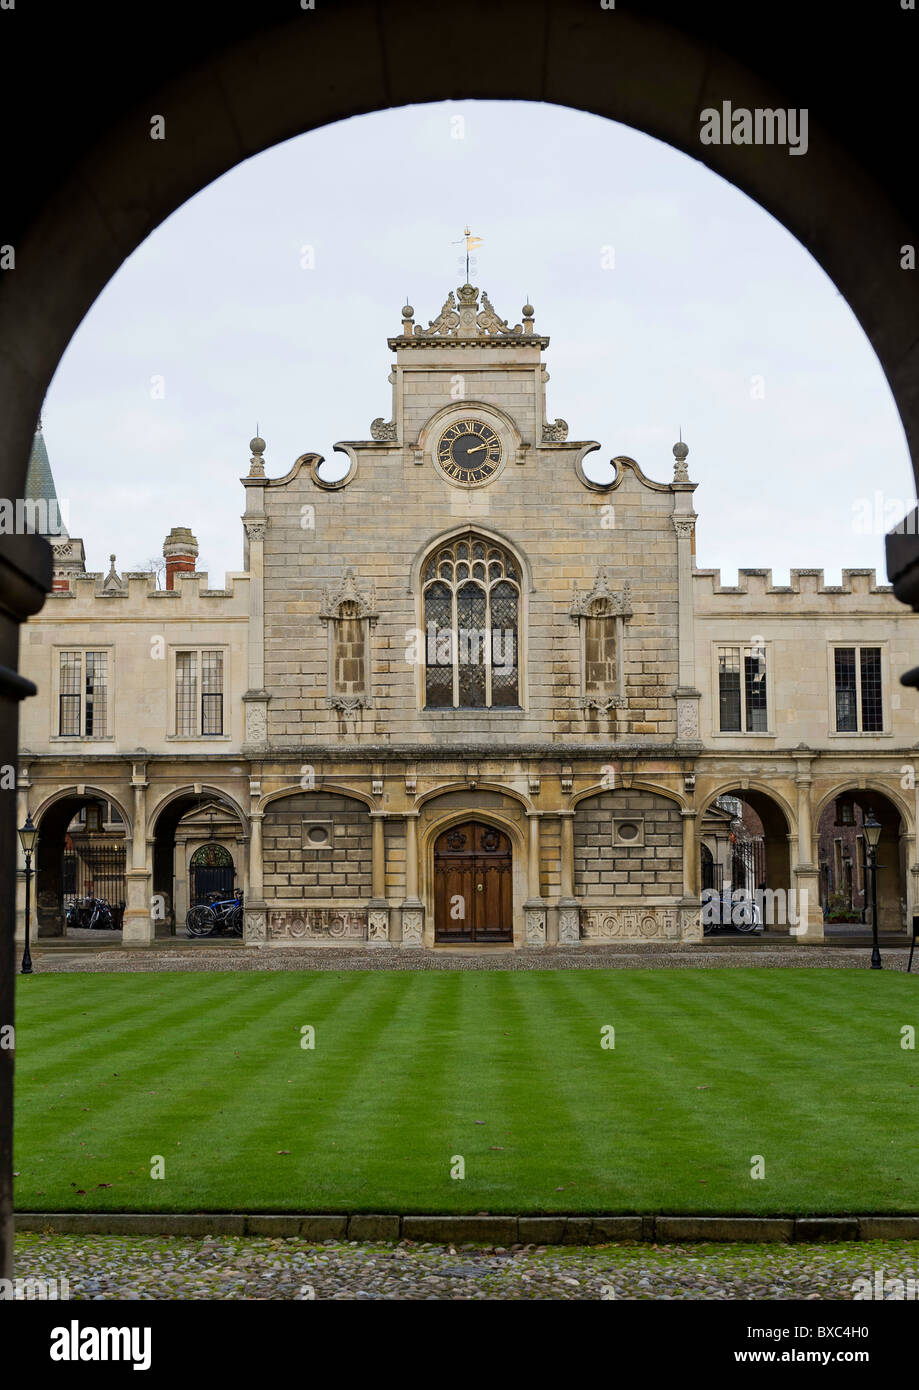 Peterhouse is the oldest and also the smallest college in the university of Cambridge, England. - Stock Image